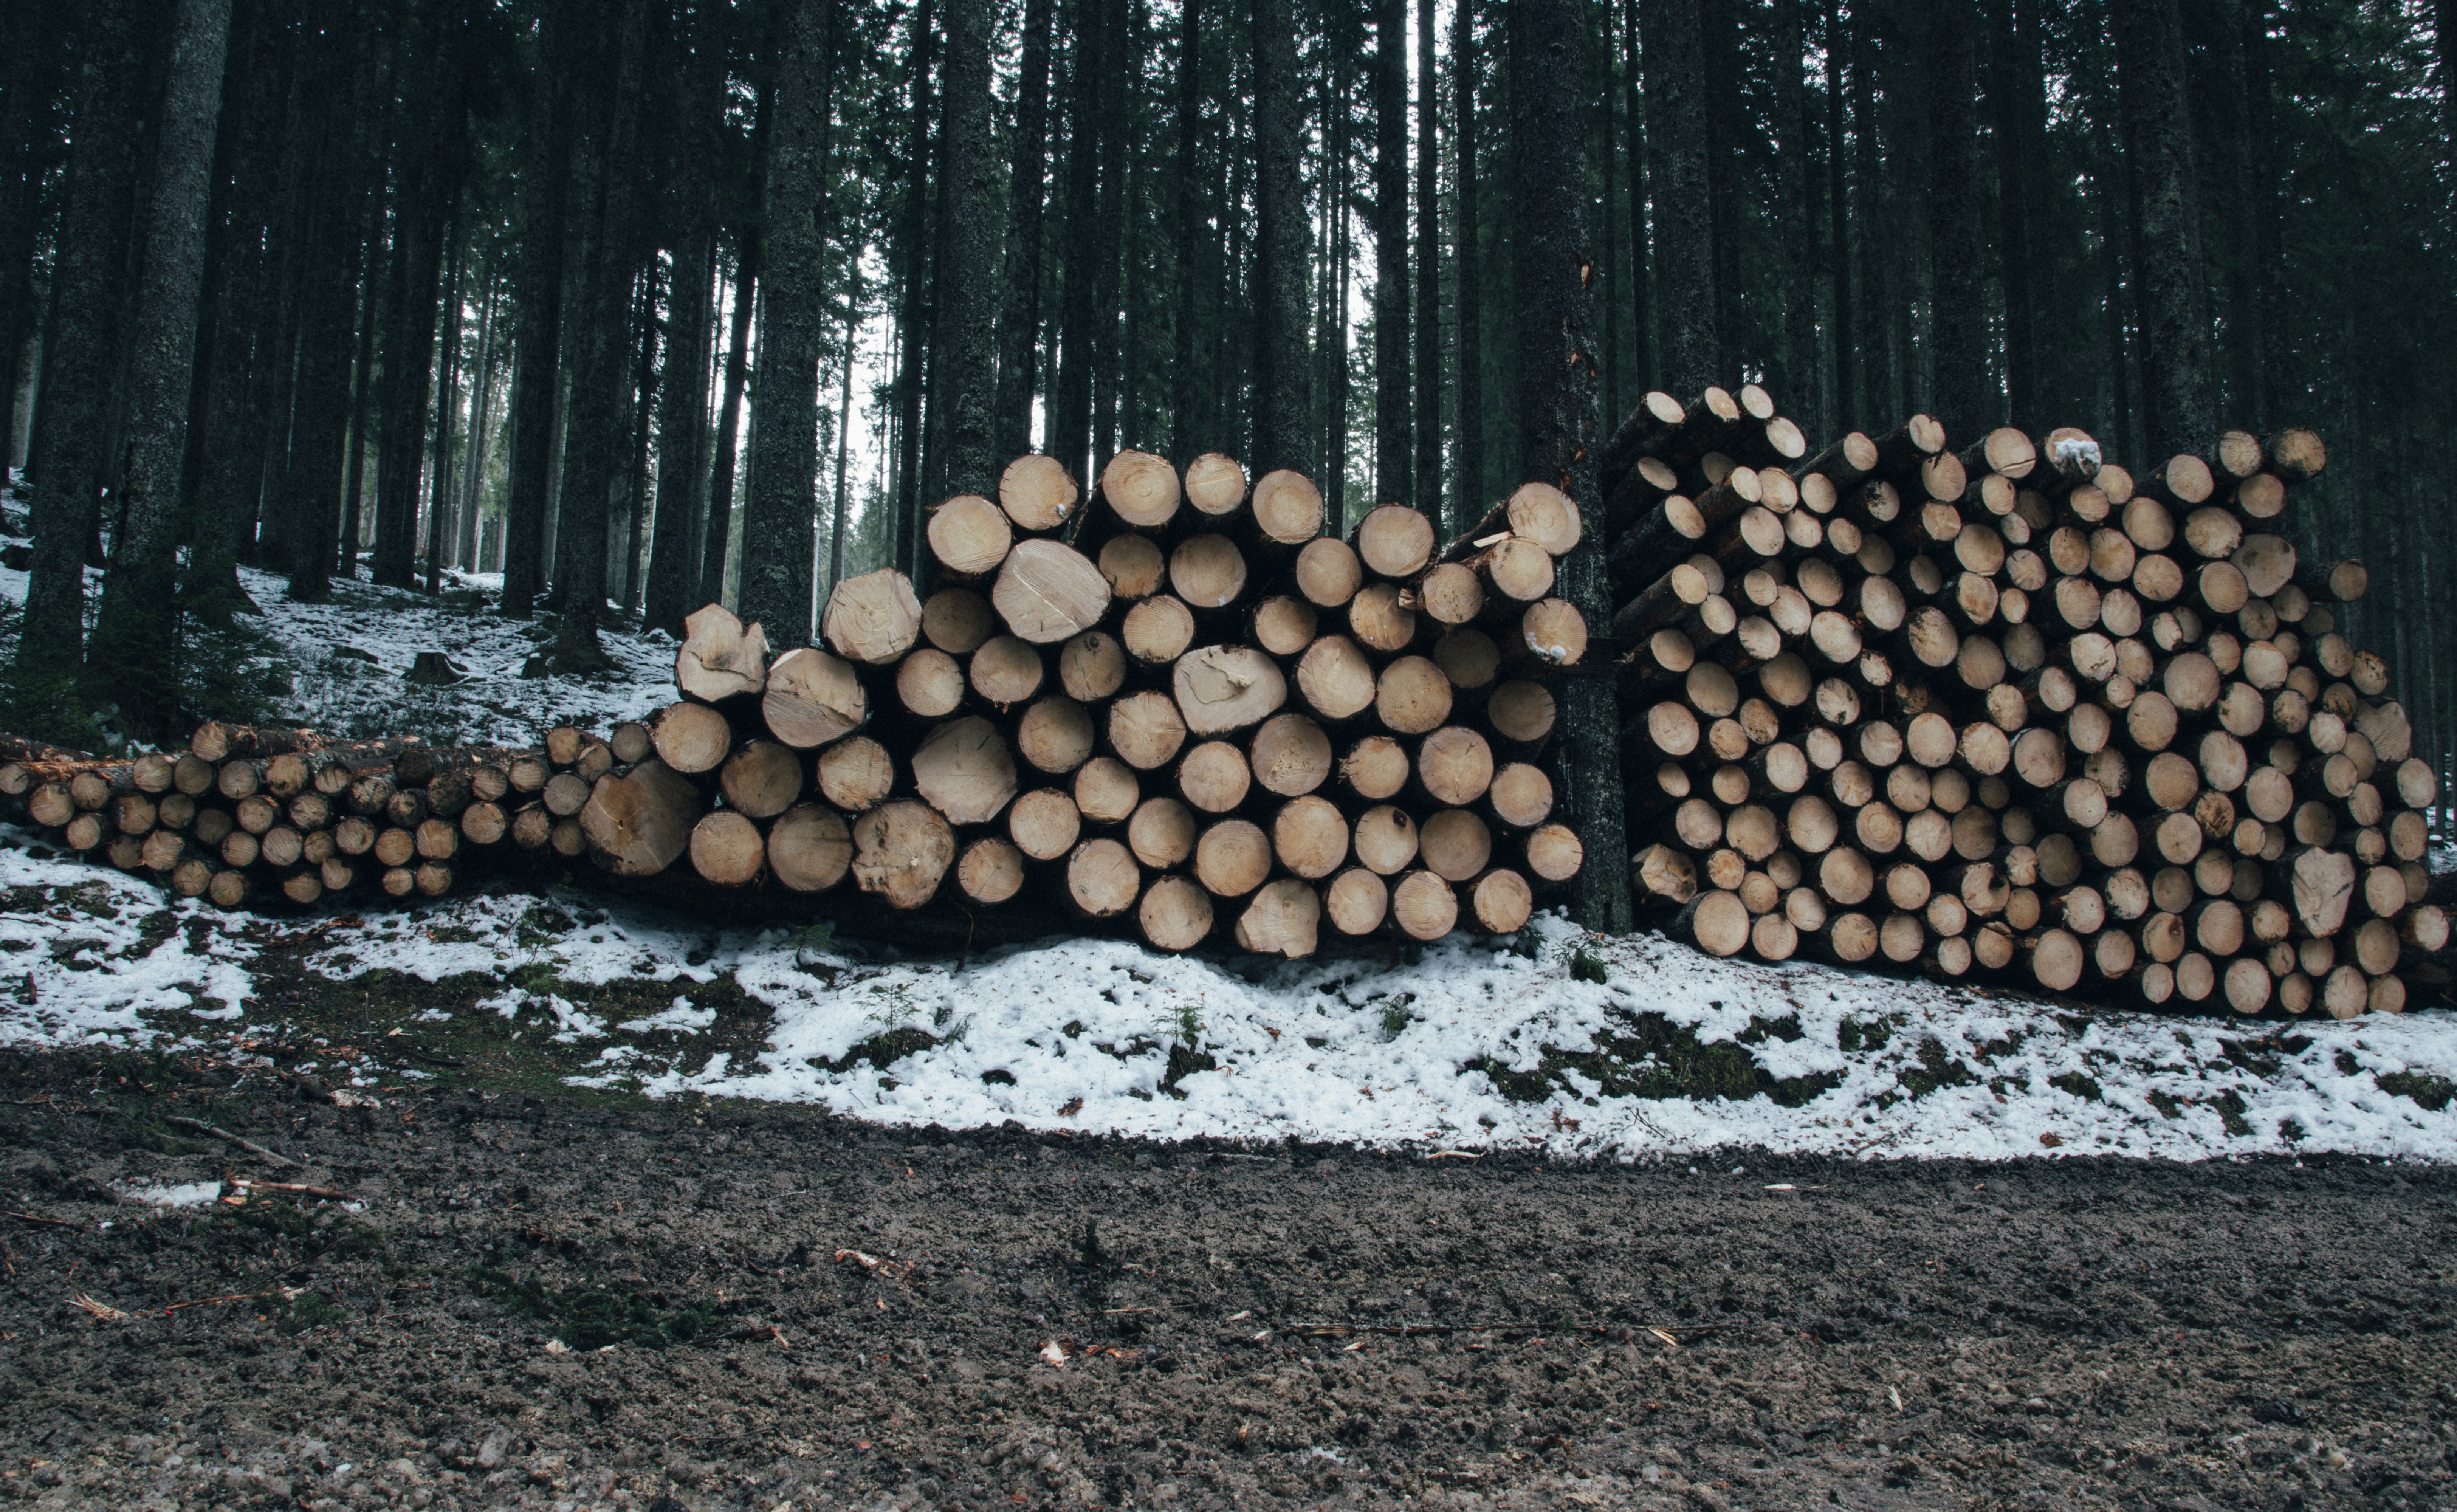 Enormous amounts of timber lay stacked on the floor of a lush forest during a winter day.